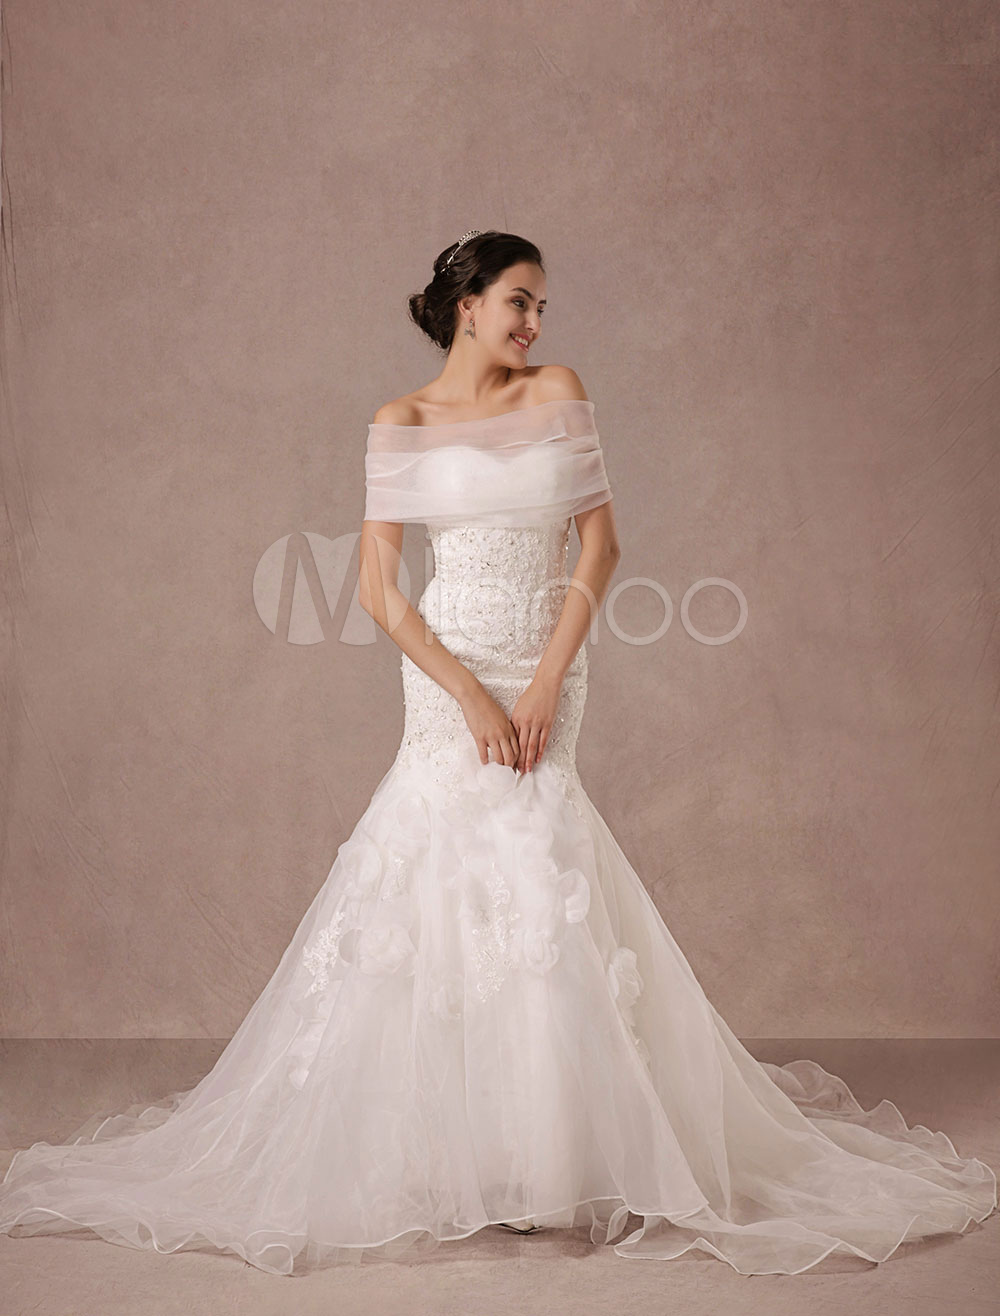 Mermaid Wedding Dress Lace Beading Chaple Train Bridal Gown With Detachable Organza Wrap And Flower Applique Milanoo